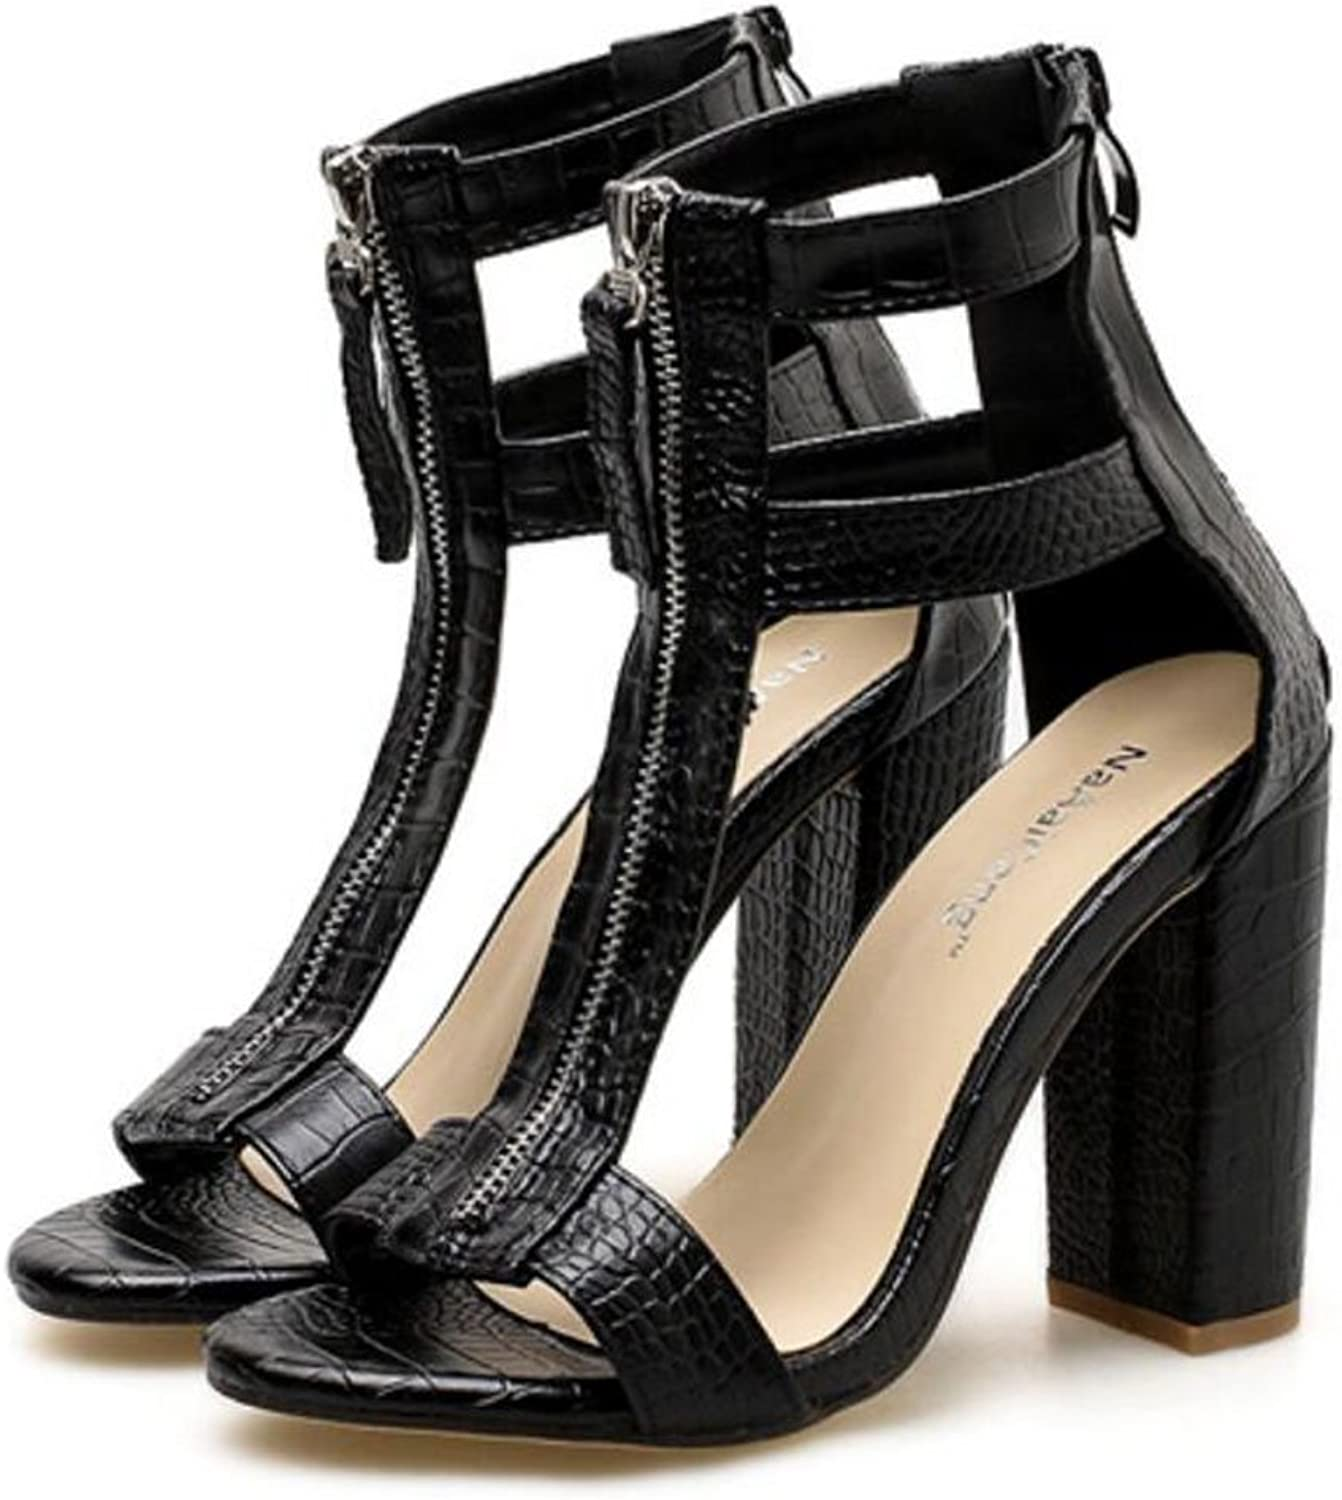 LZWSMGS Women's Open-Toe Sandals Shallow Mouth High Heels T-Type with High Heels Fashion Wild Rome High Heels Work Professional shoes Black Court shoes Party Party Evening Ladies Sandals